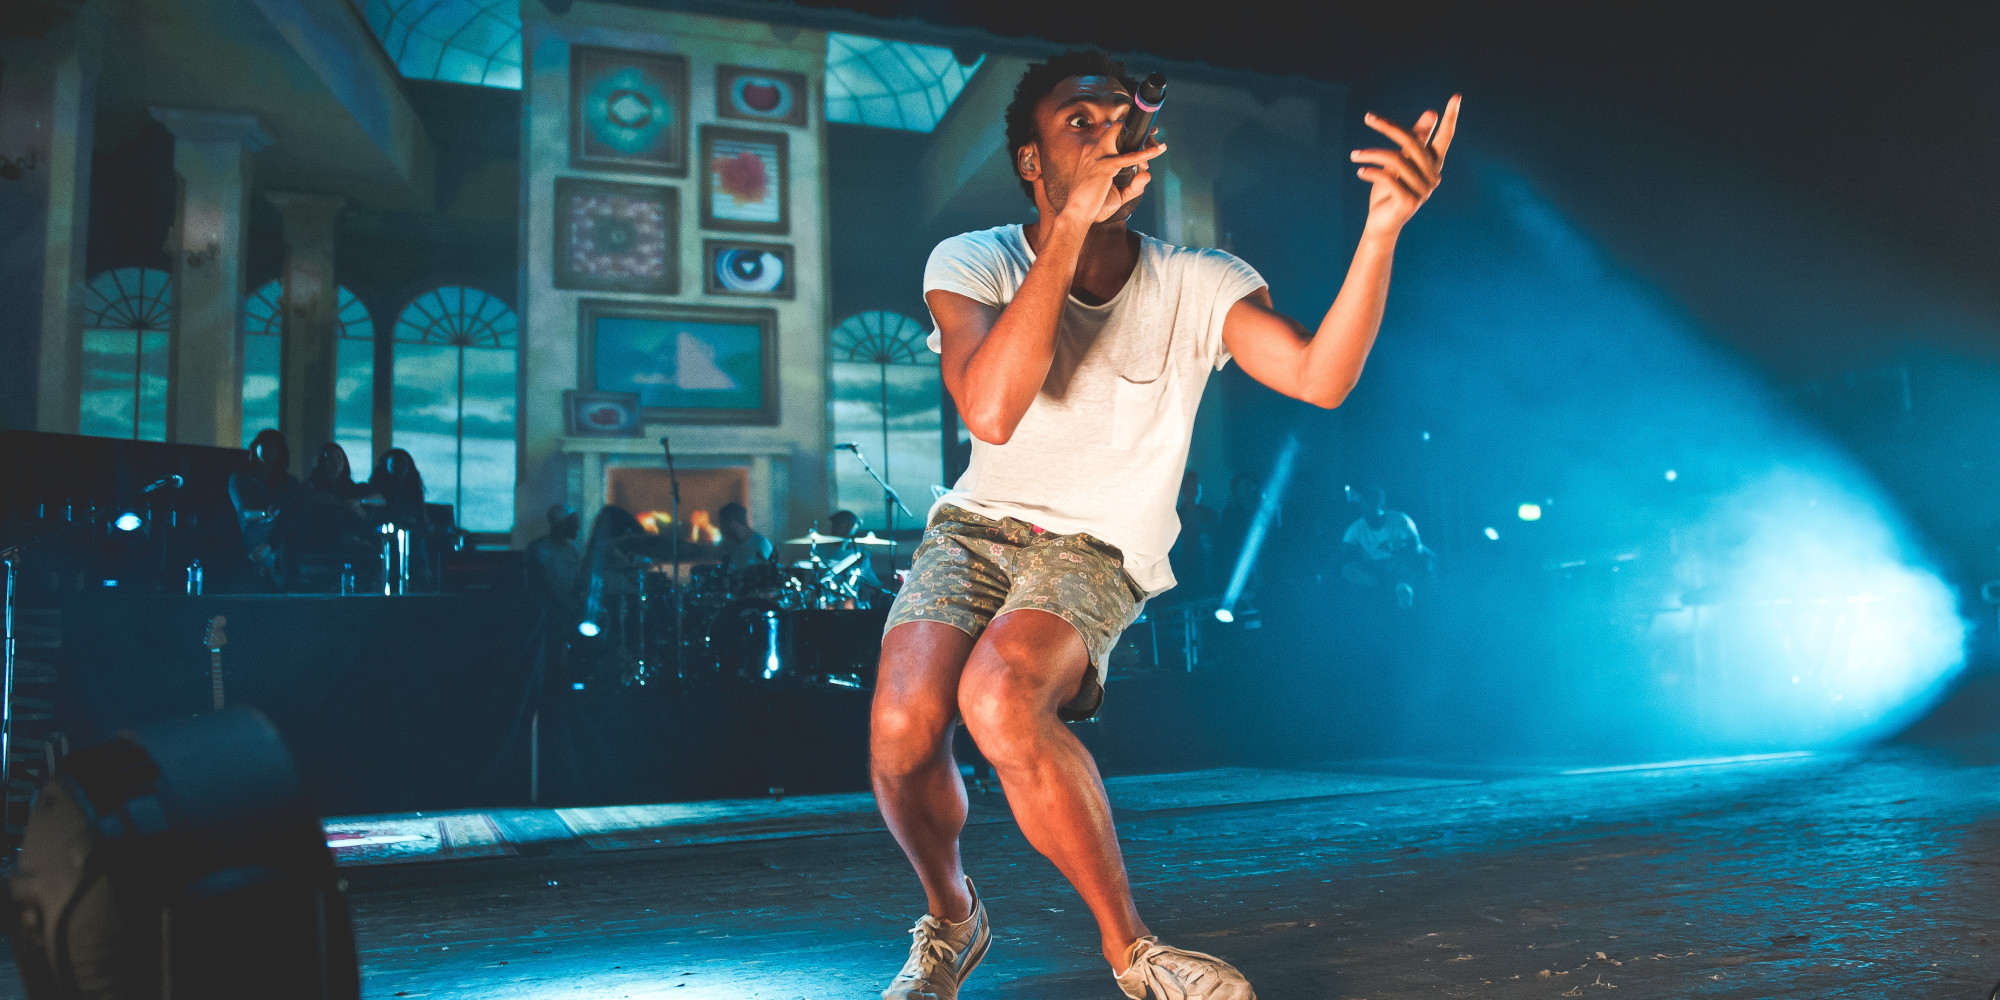 LONDON, UNITED KINGDOM - AUGUST 19: Childish Gambino performs on stage at Brixton Academy on August 19, 2014 in London, United Kingdom. (Photo by Joseph Okpako/Redferns via Getty Images)